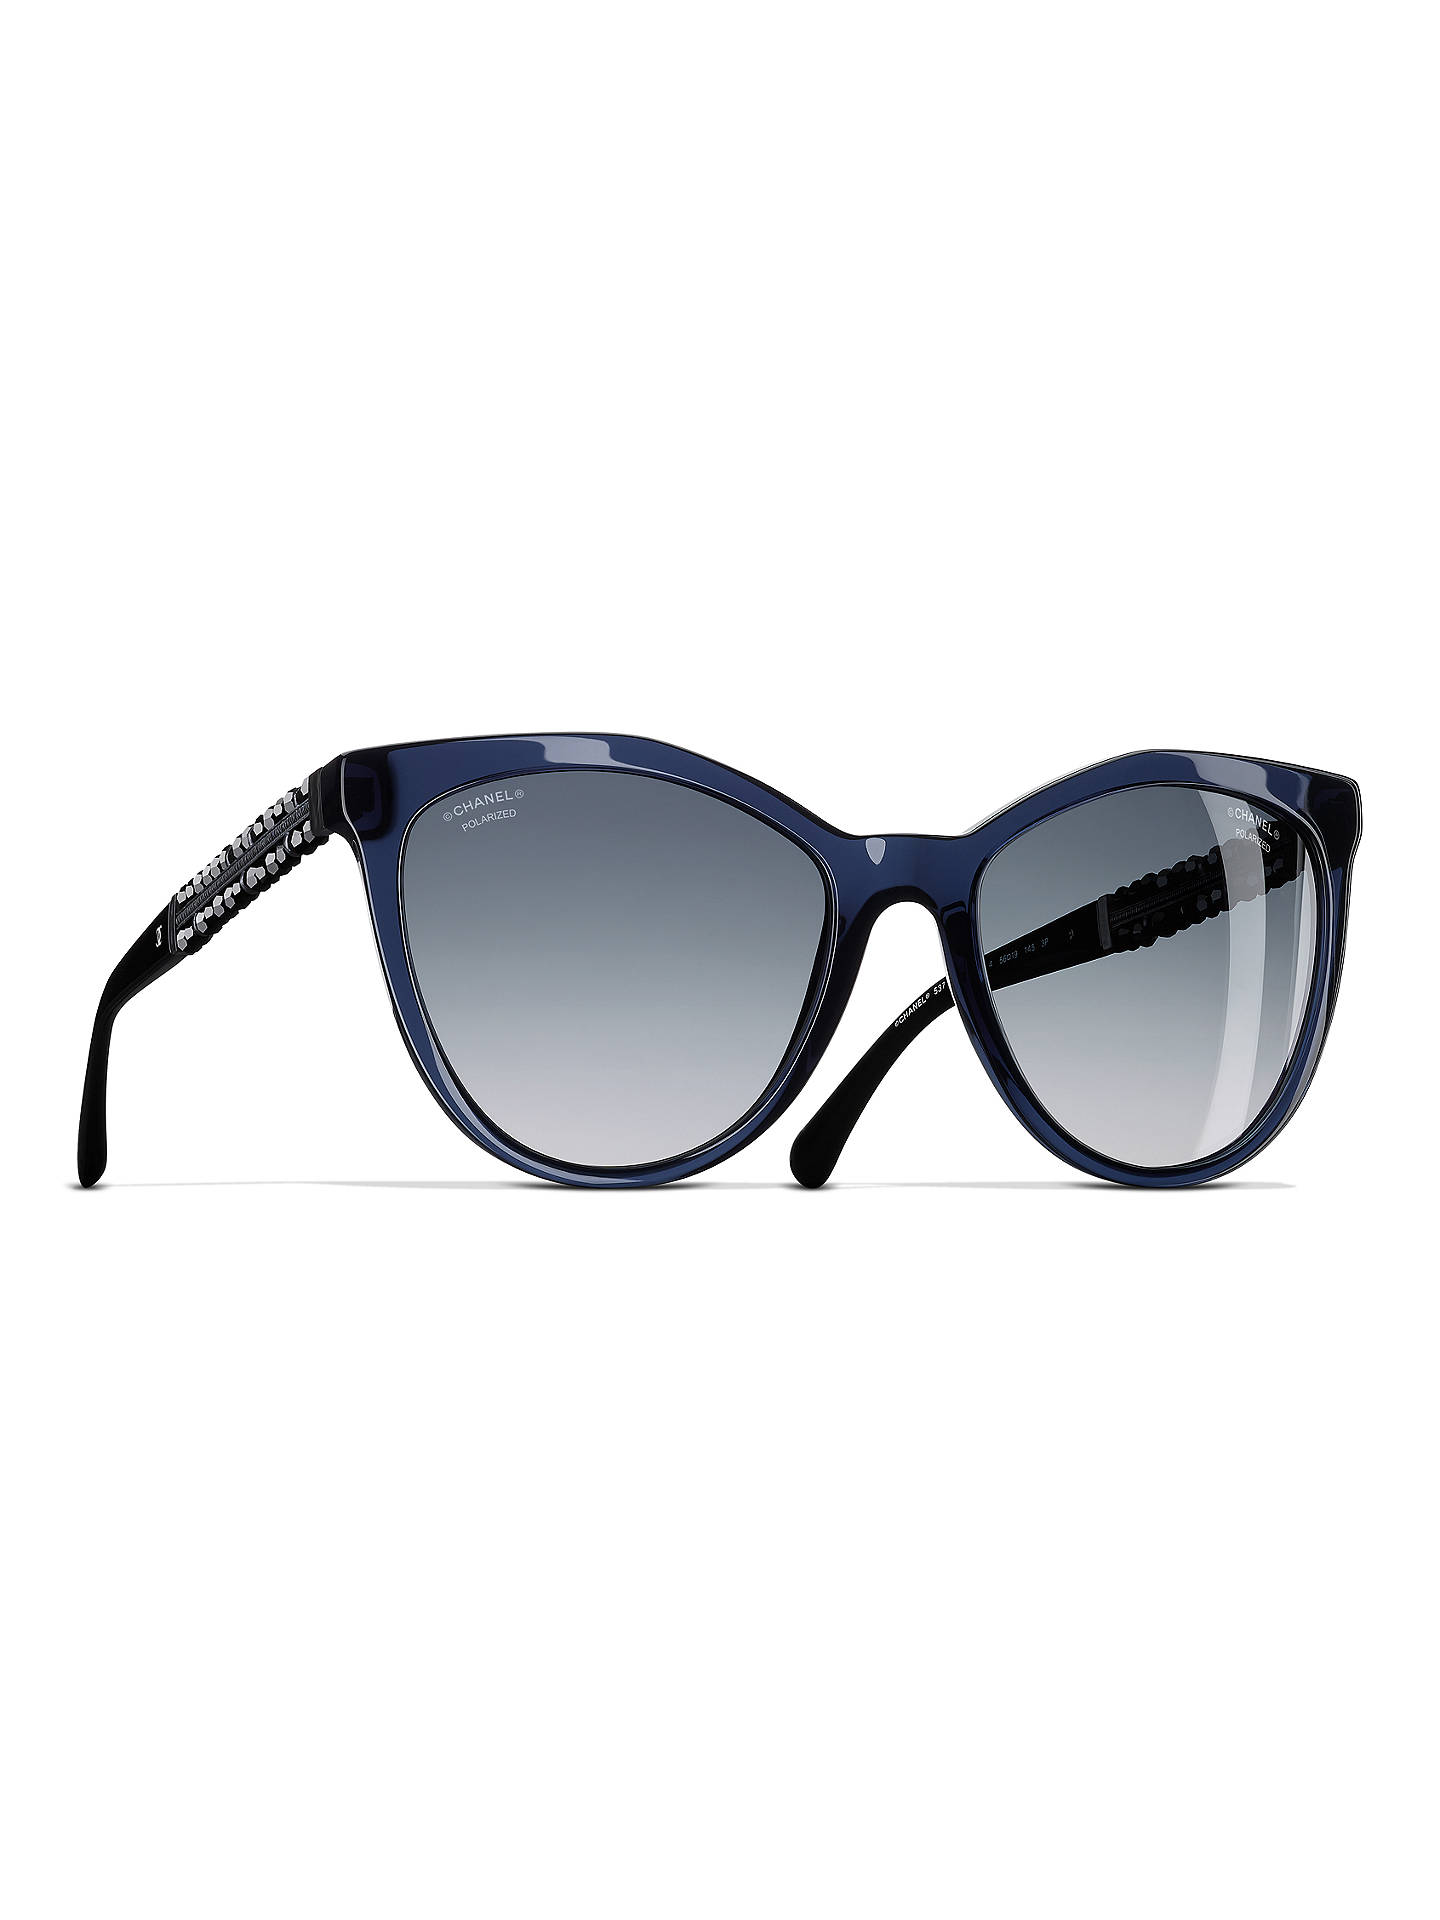 6816f56a188 BuyCHANEL Polarised Butterfly Sunglasses CH5376B Dark Blue Online at  johnlewis.com ...